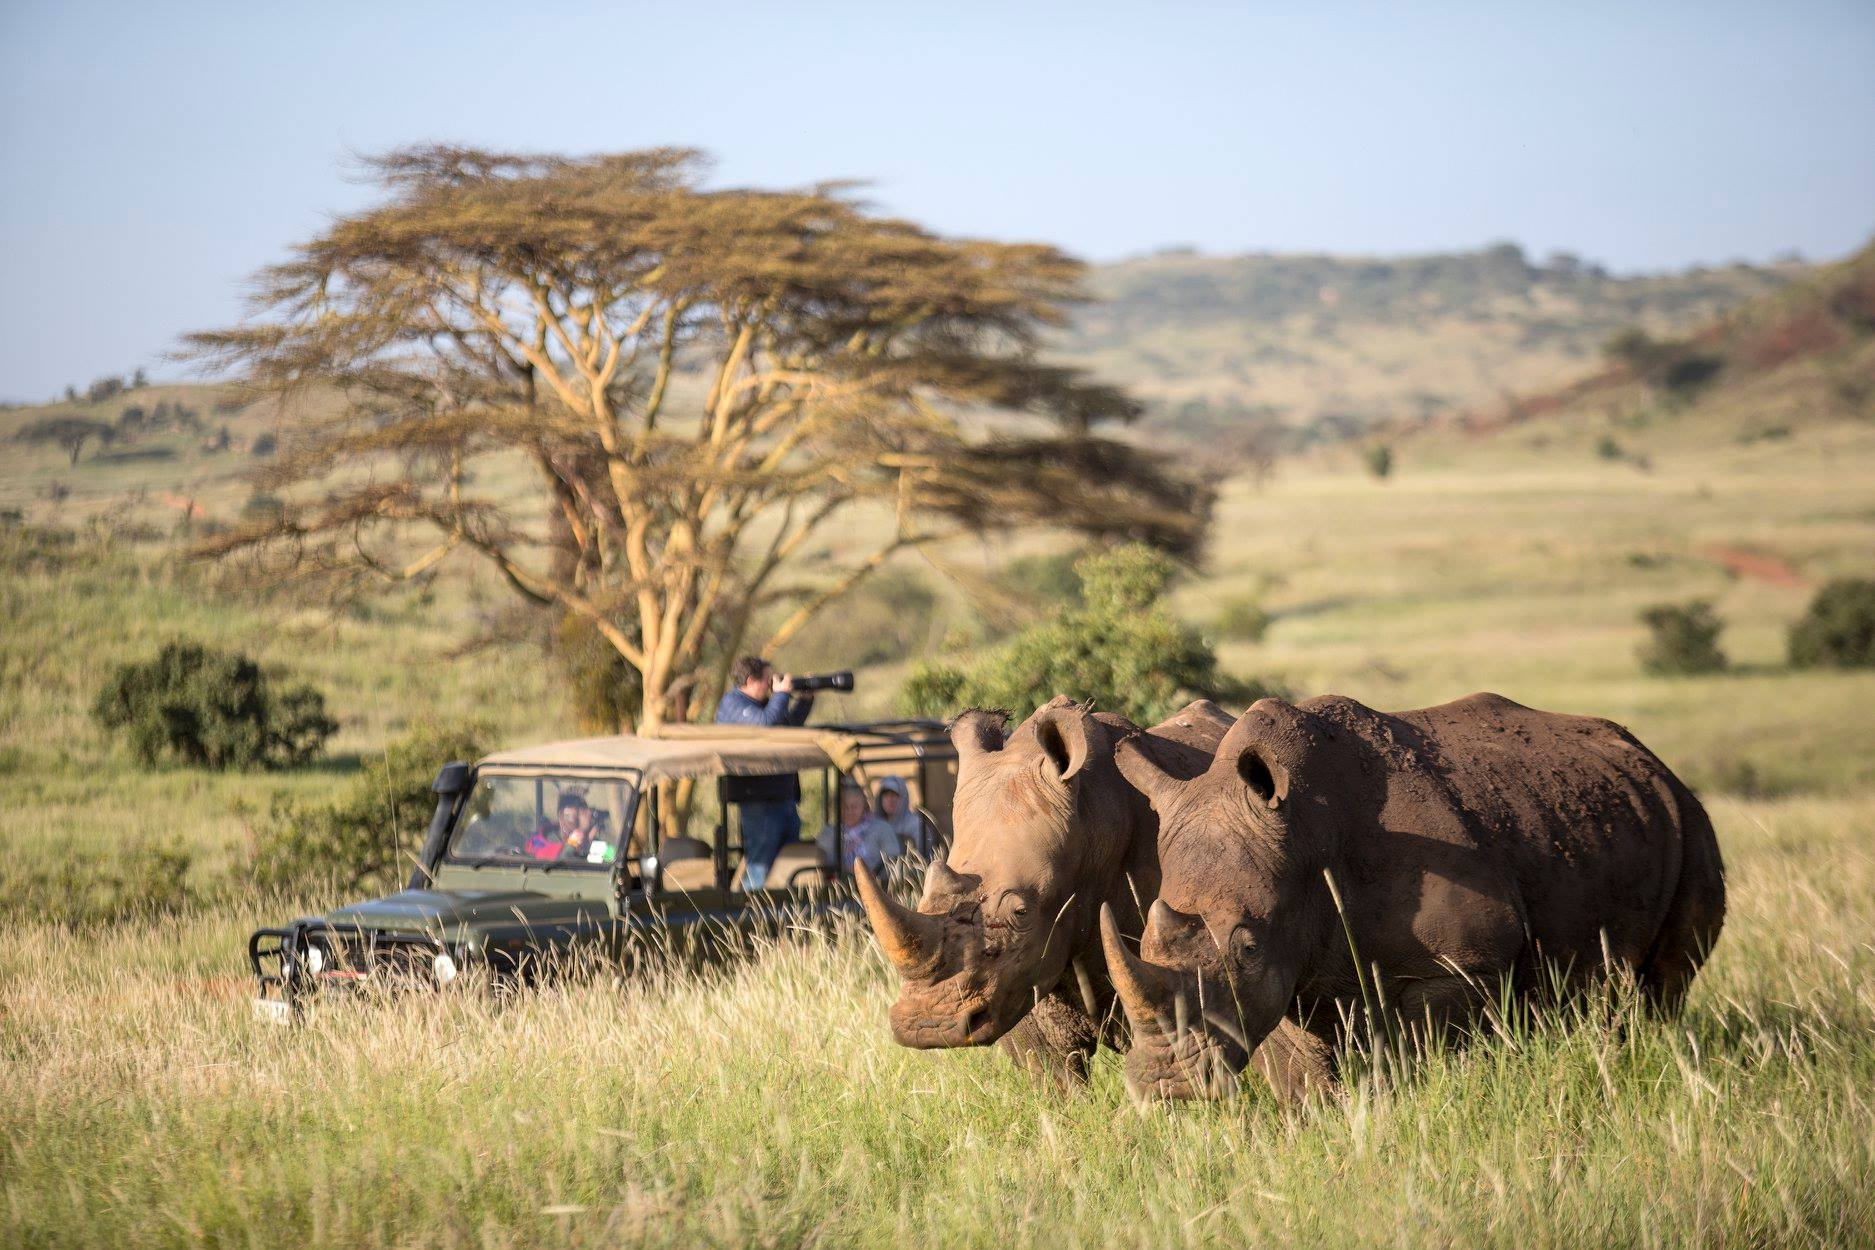 game vehicle stopped in front of a tree to look at two white rhinos at Sirikoi on a game drive safari